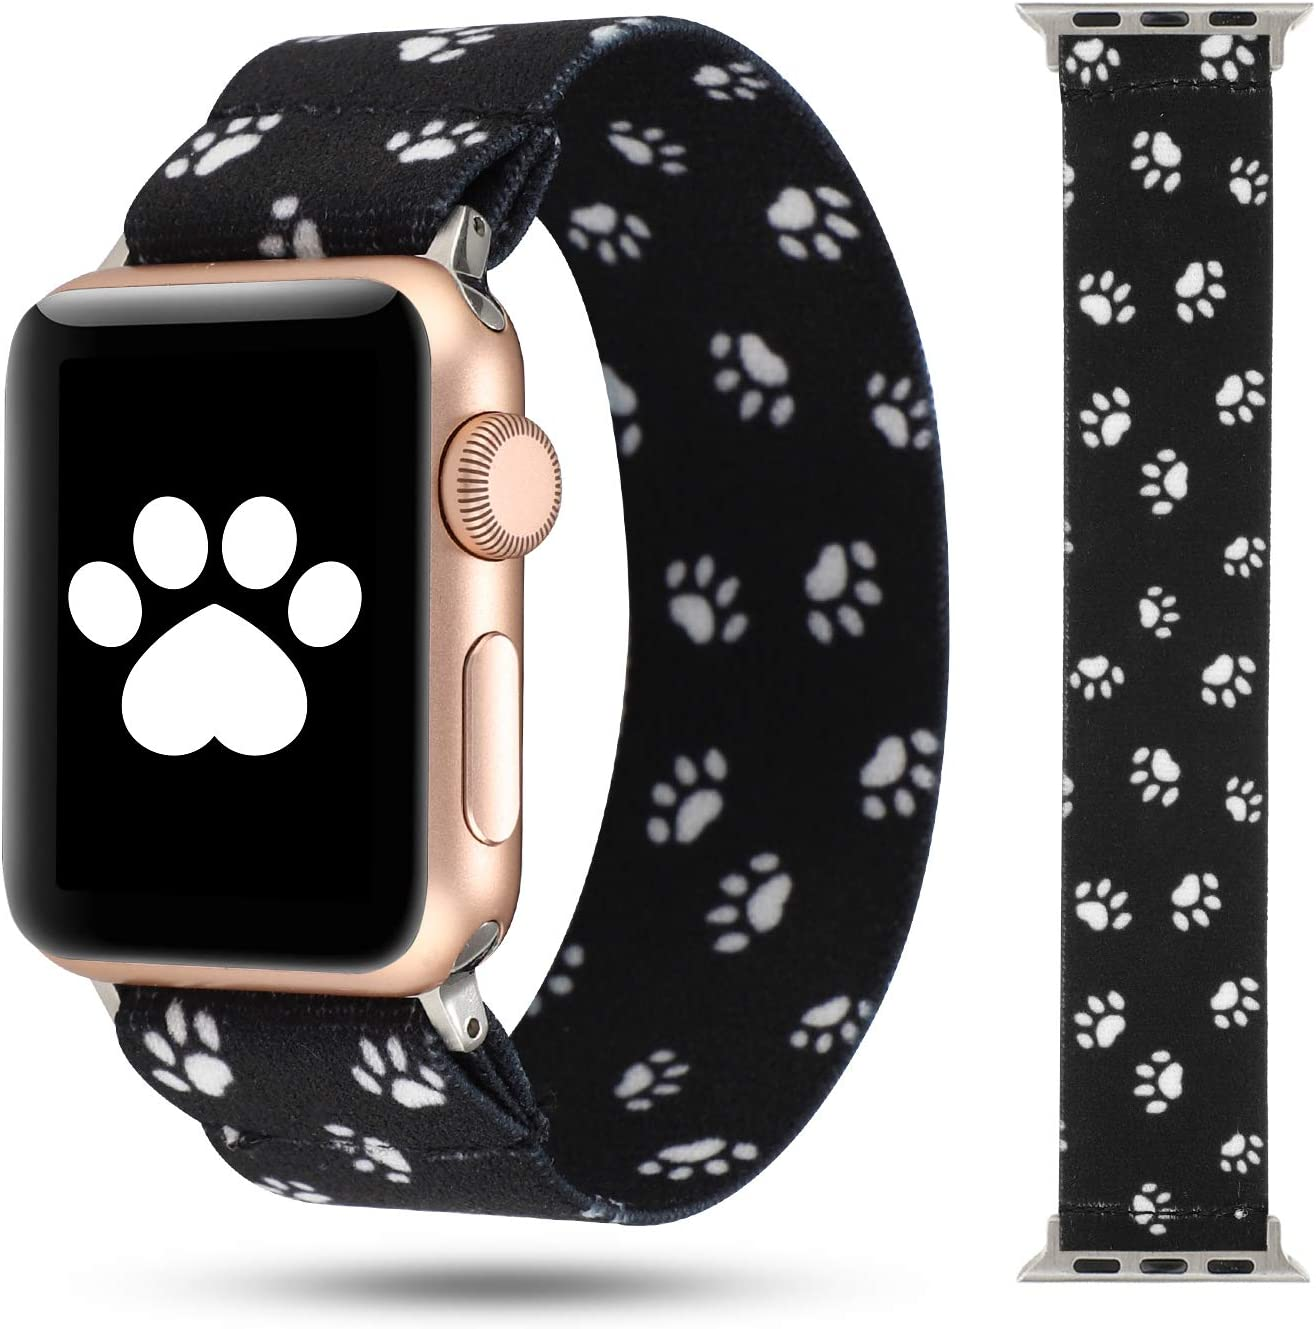 WONMILLE Scrunchie Band Compatible with Apple Watch Band Series 6/5/4 38mm/40mm, Nylon Elastic Bracelet Women Replacement Wristbands for iWatch 3/2/1 42mm/44mm Accessories